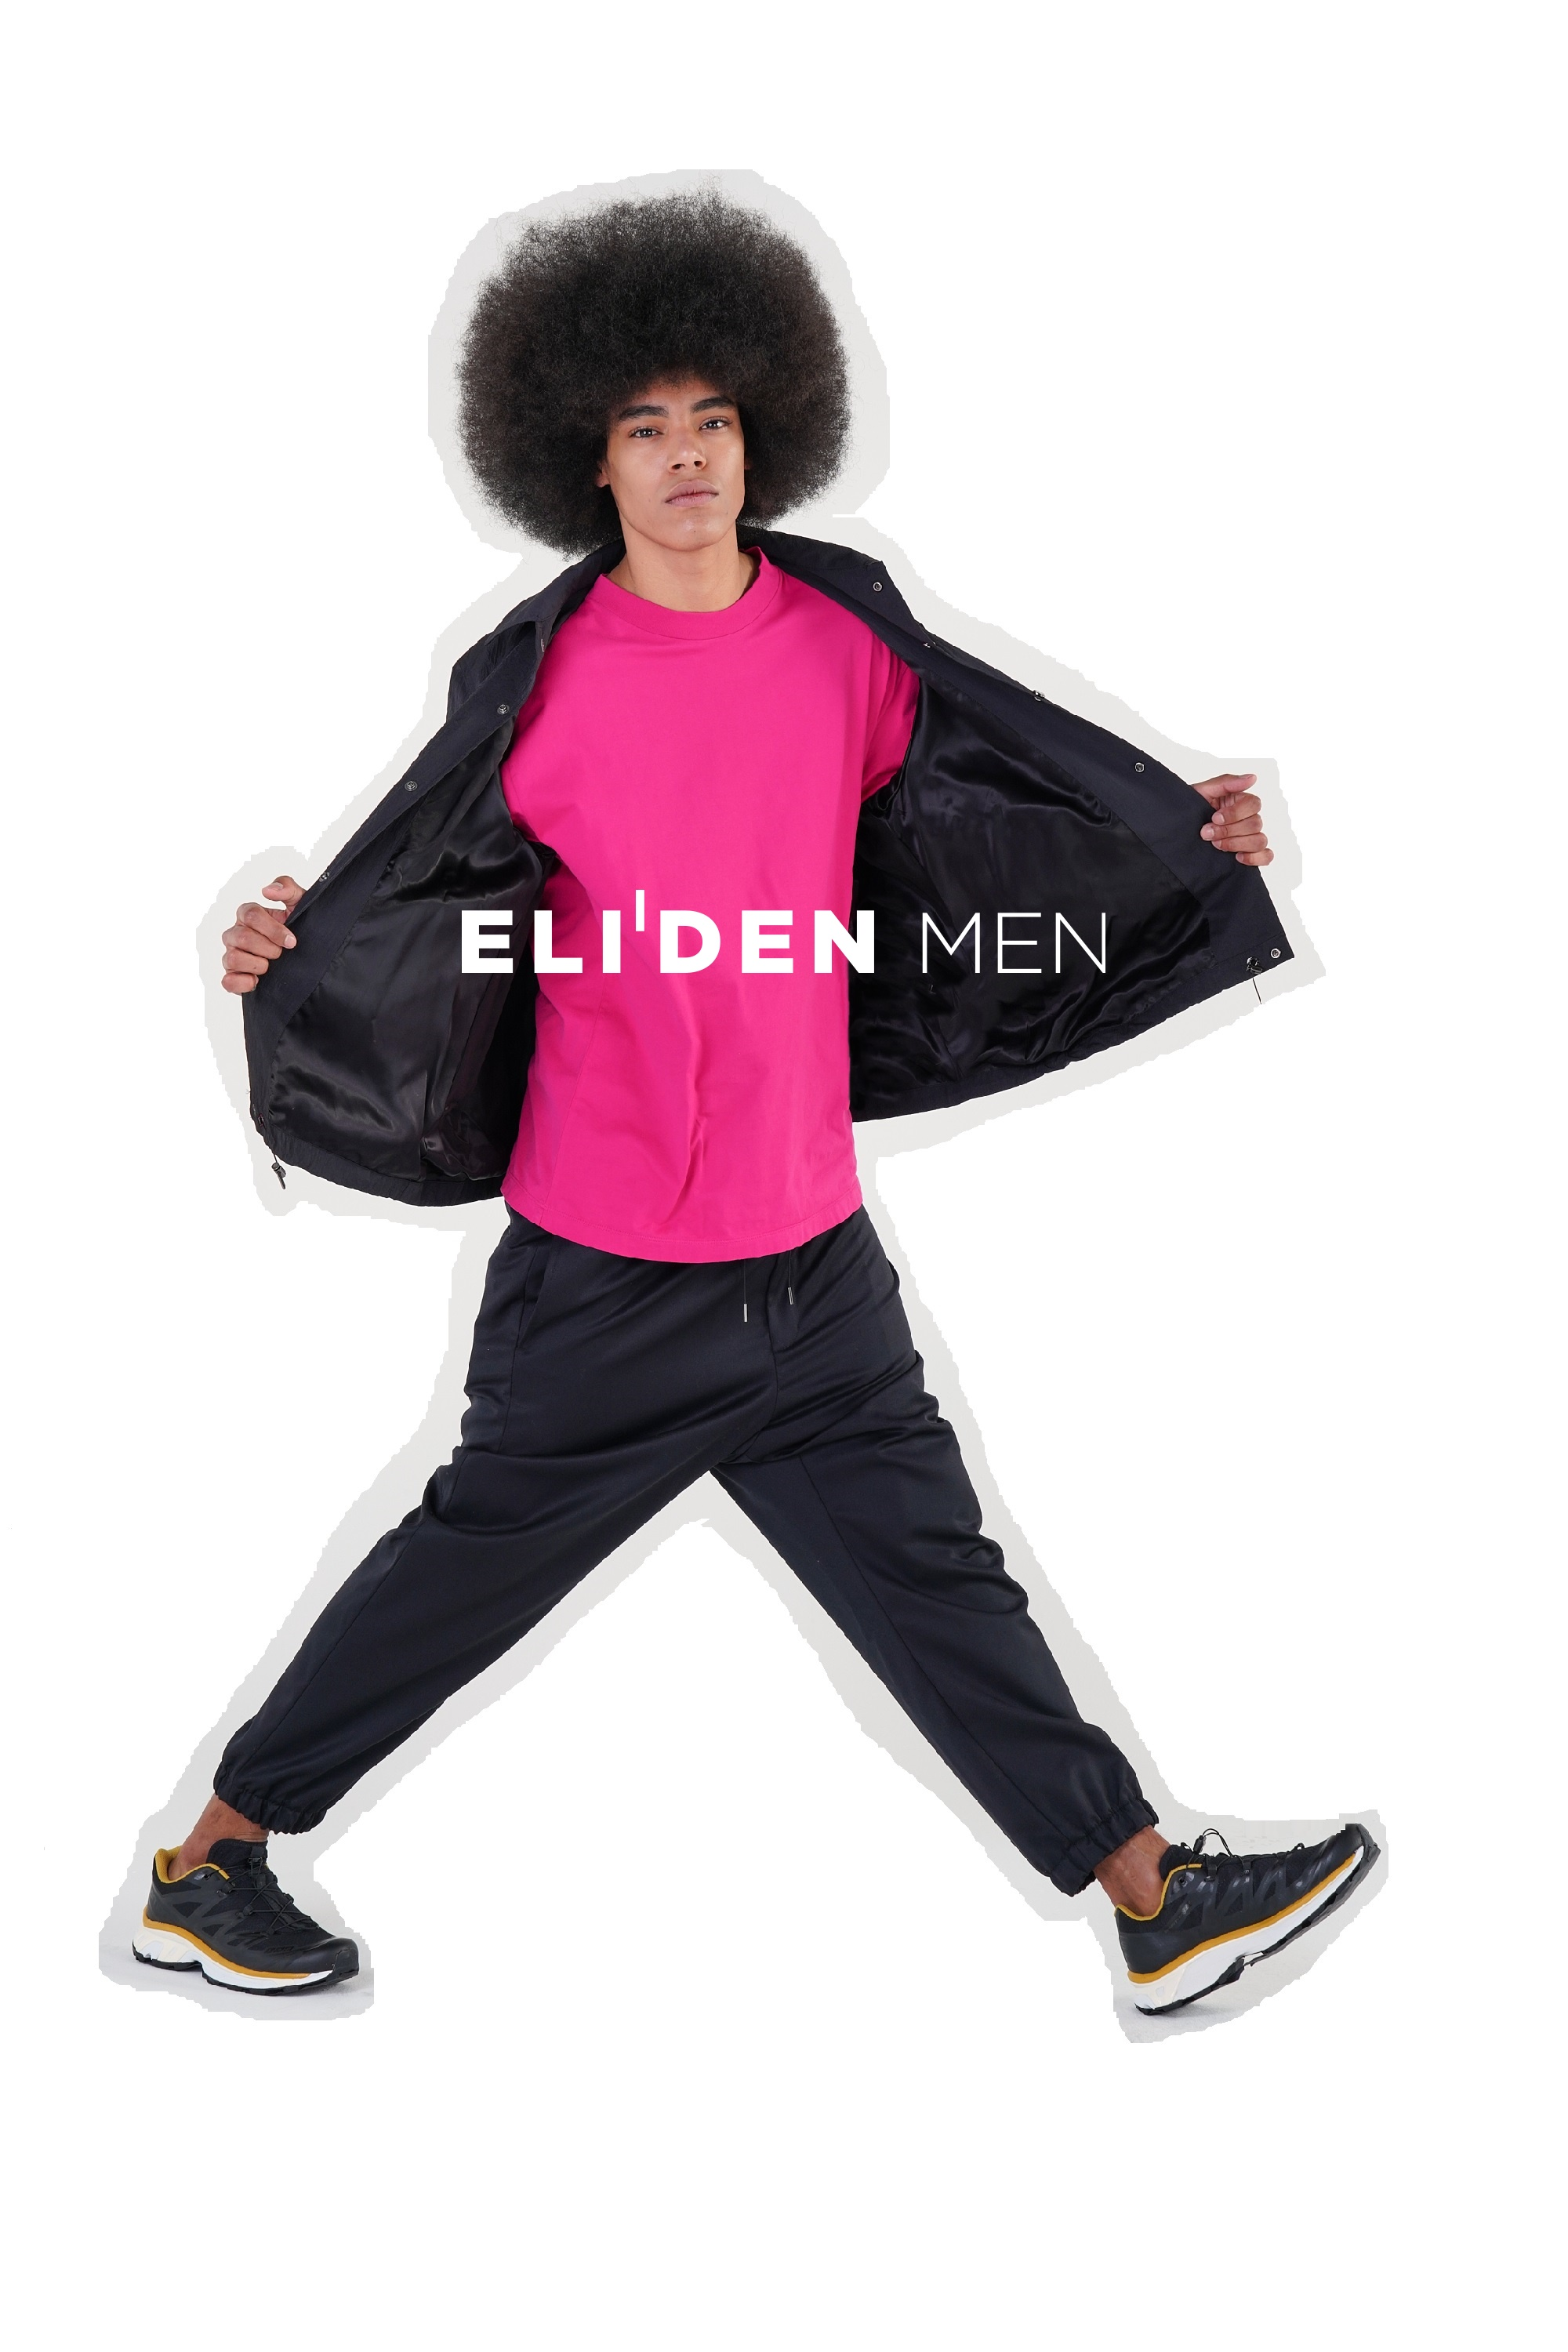 ELIDENMEN 20 S/S LOOKBOOK 11